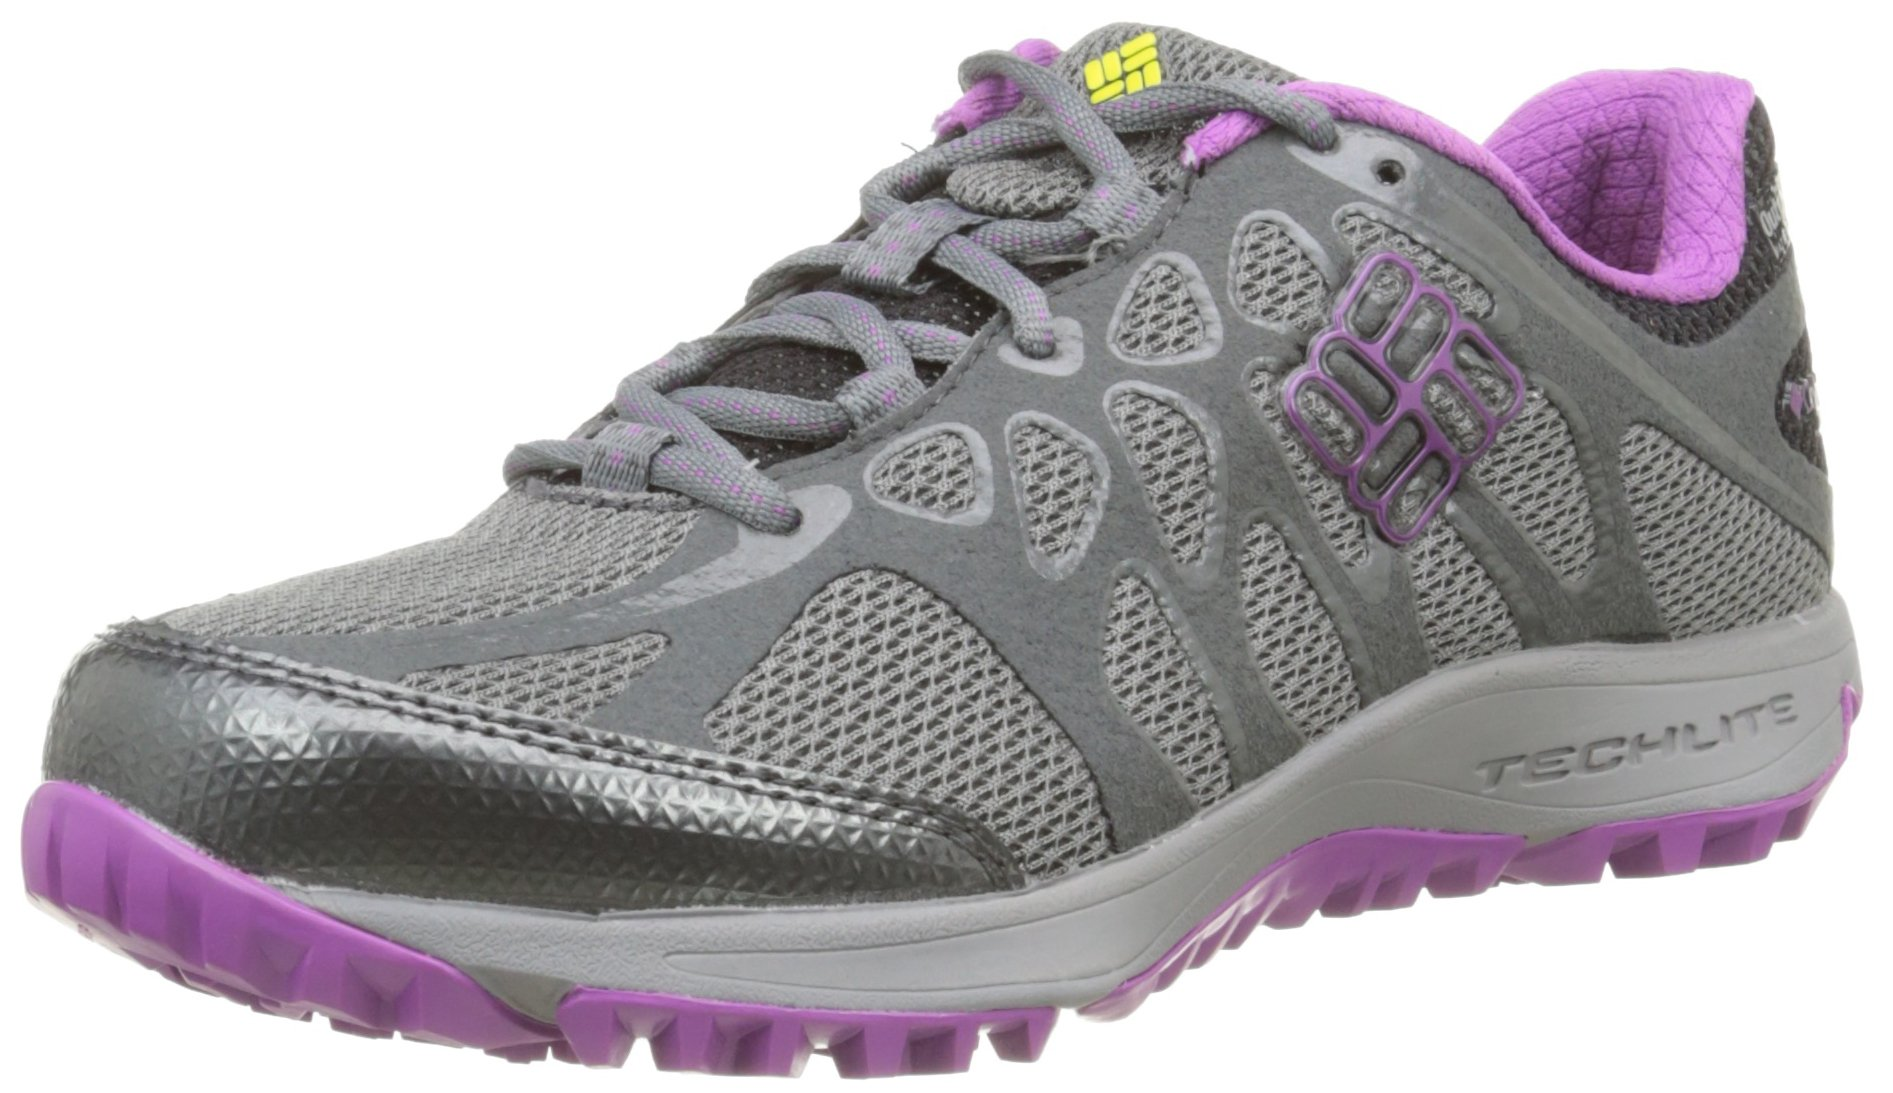 Columbia Women's Conspiracy Titanium Outdry Trail Outdoor Sneakers, Grey Mesh, 8 M